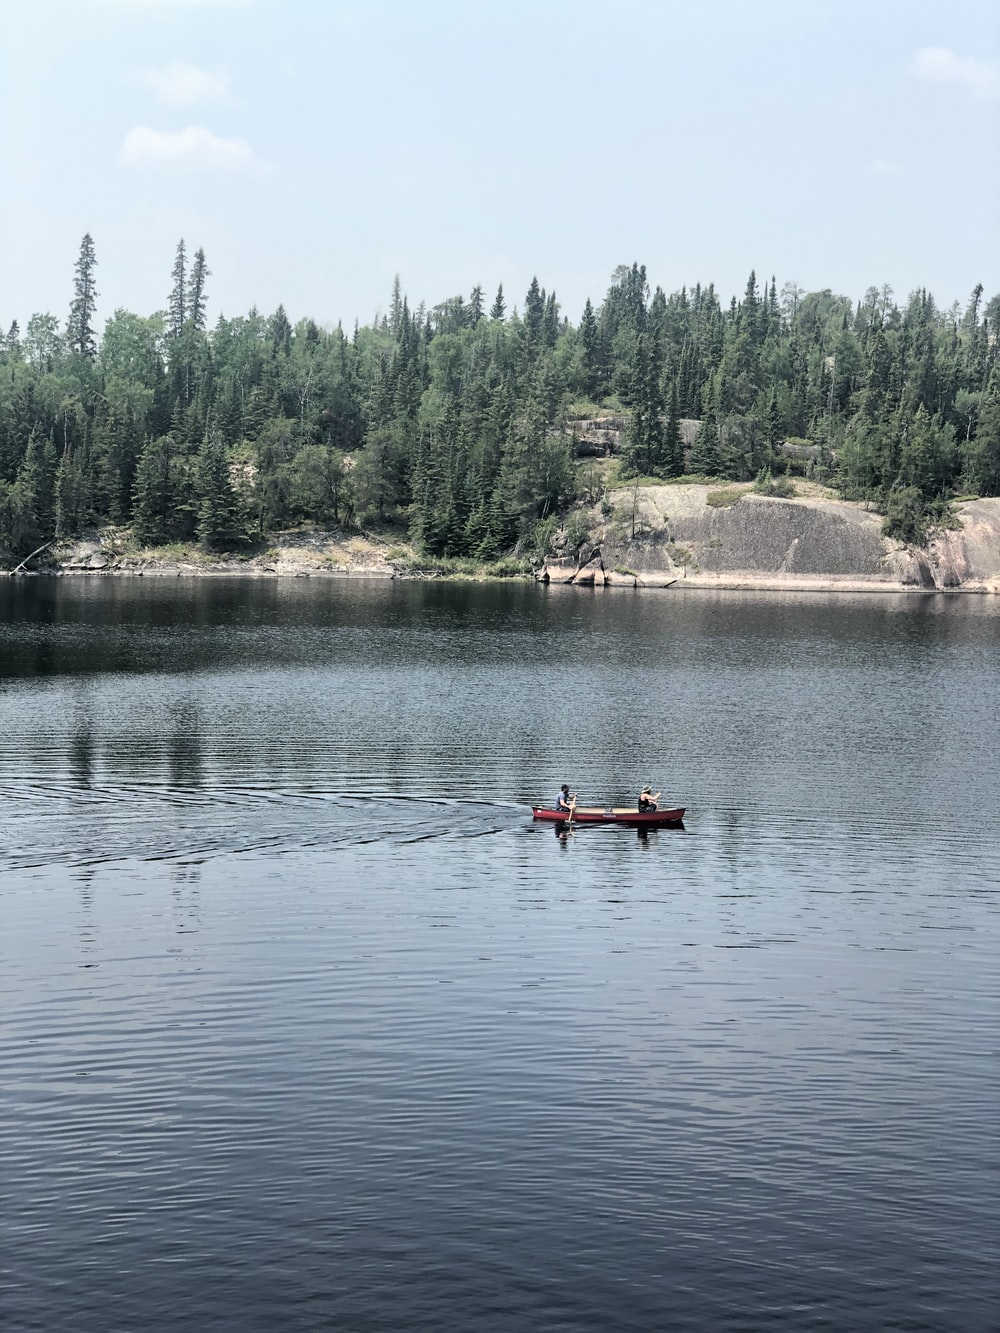 person riding on kayak near pine trees